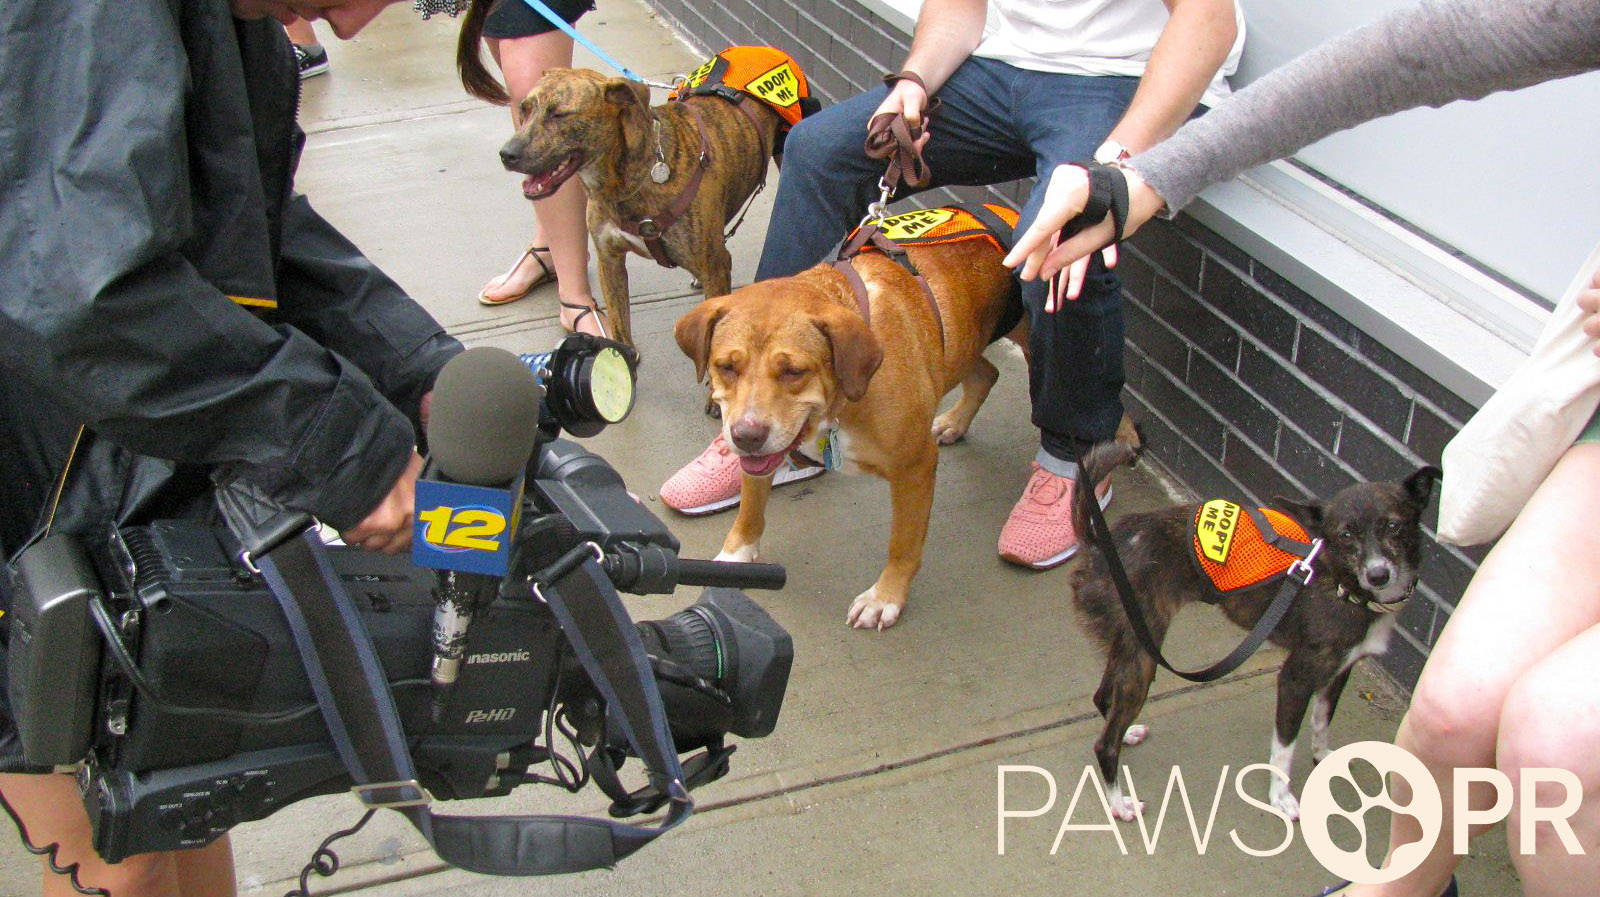 Secured media coverage for Project Blue Collar and rescue dogs (January 12, 2012).